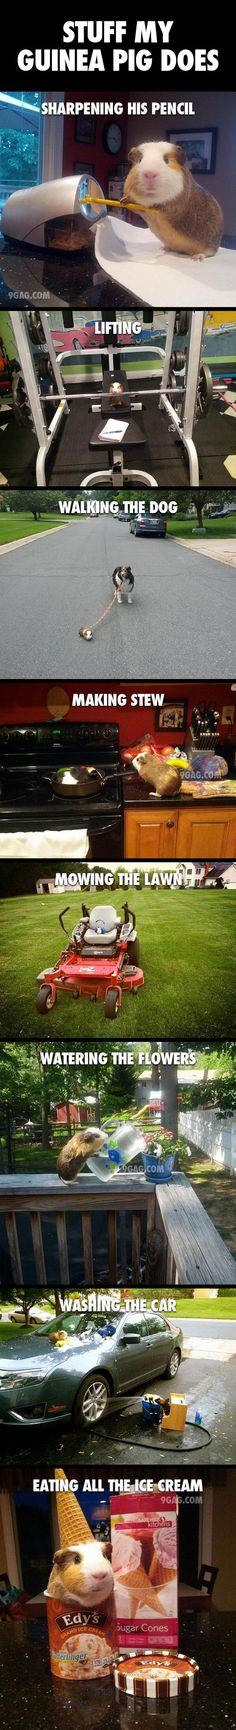 Had to repin this solely for the lawn mower pic, it's soo cute!